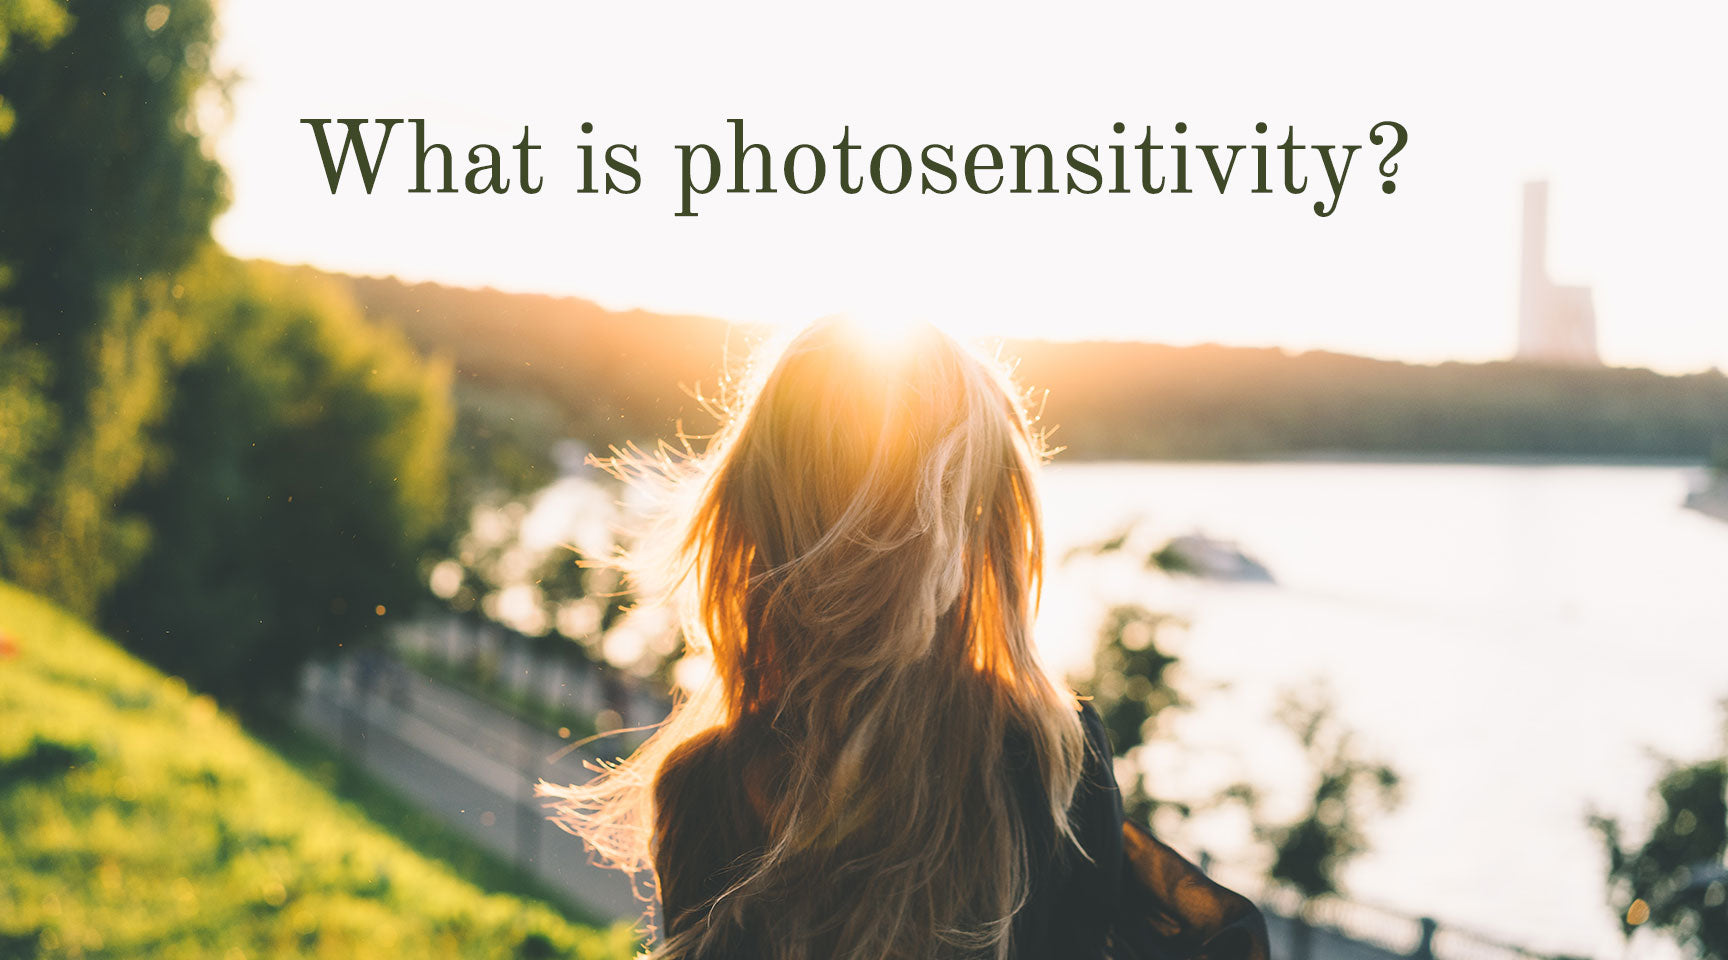 What is photosensitivity?